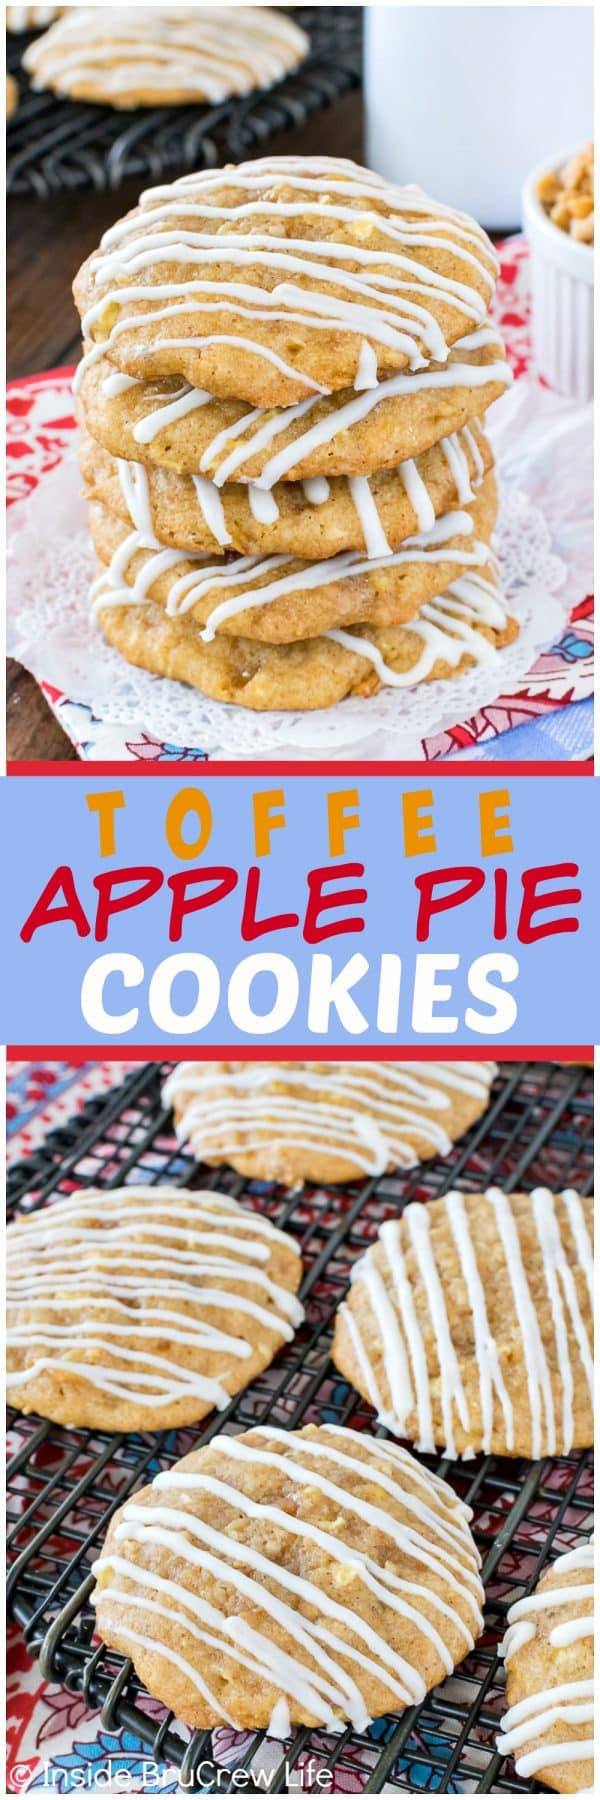 Toffee Apple Pie Cookies - these sweet homemade apple cookies are loaded with fruit, toffee bits and graham cracker crumbs. Great recipe to fill the cookie jar with this fall! #apple #cookies #homemade #fall #toffee #cookiejar #baking